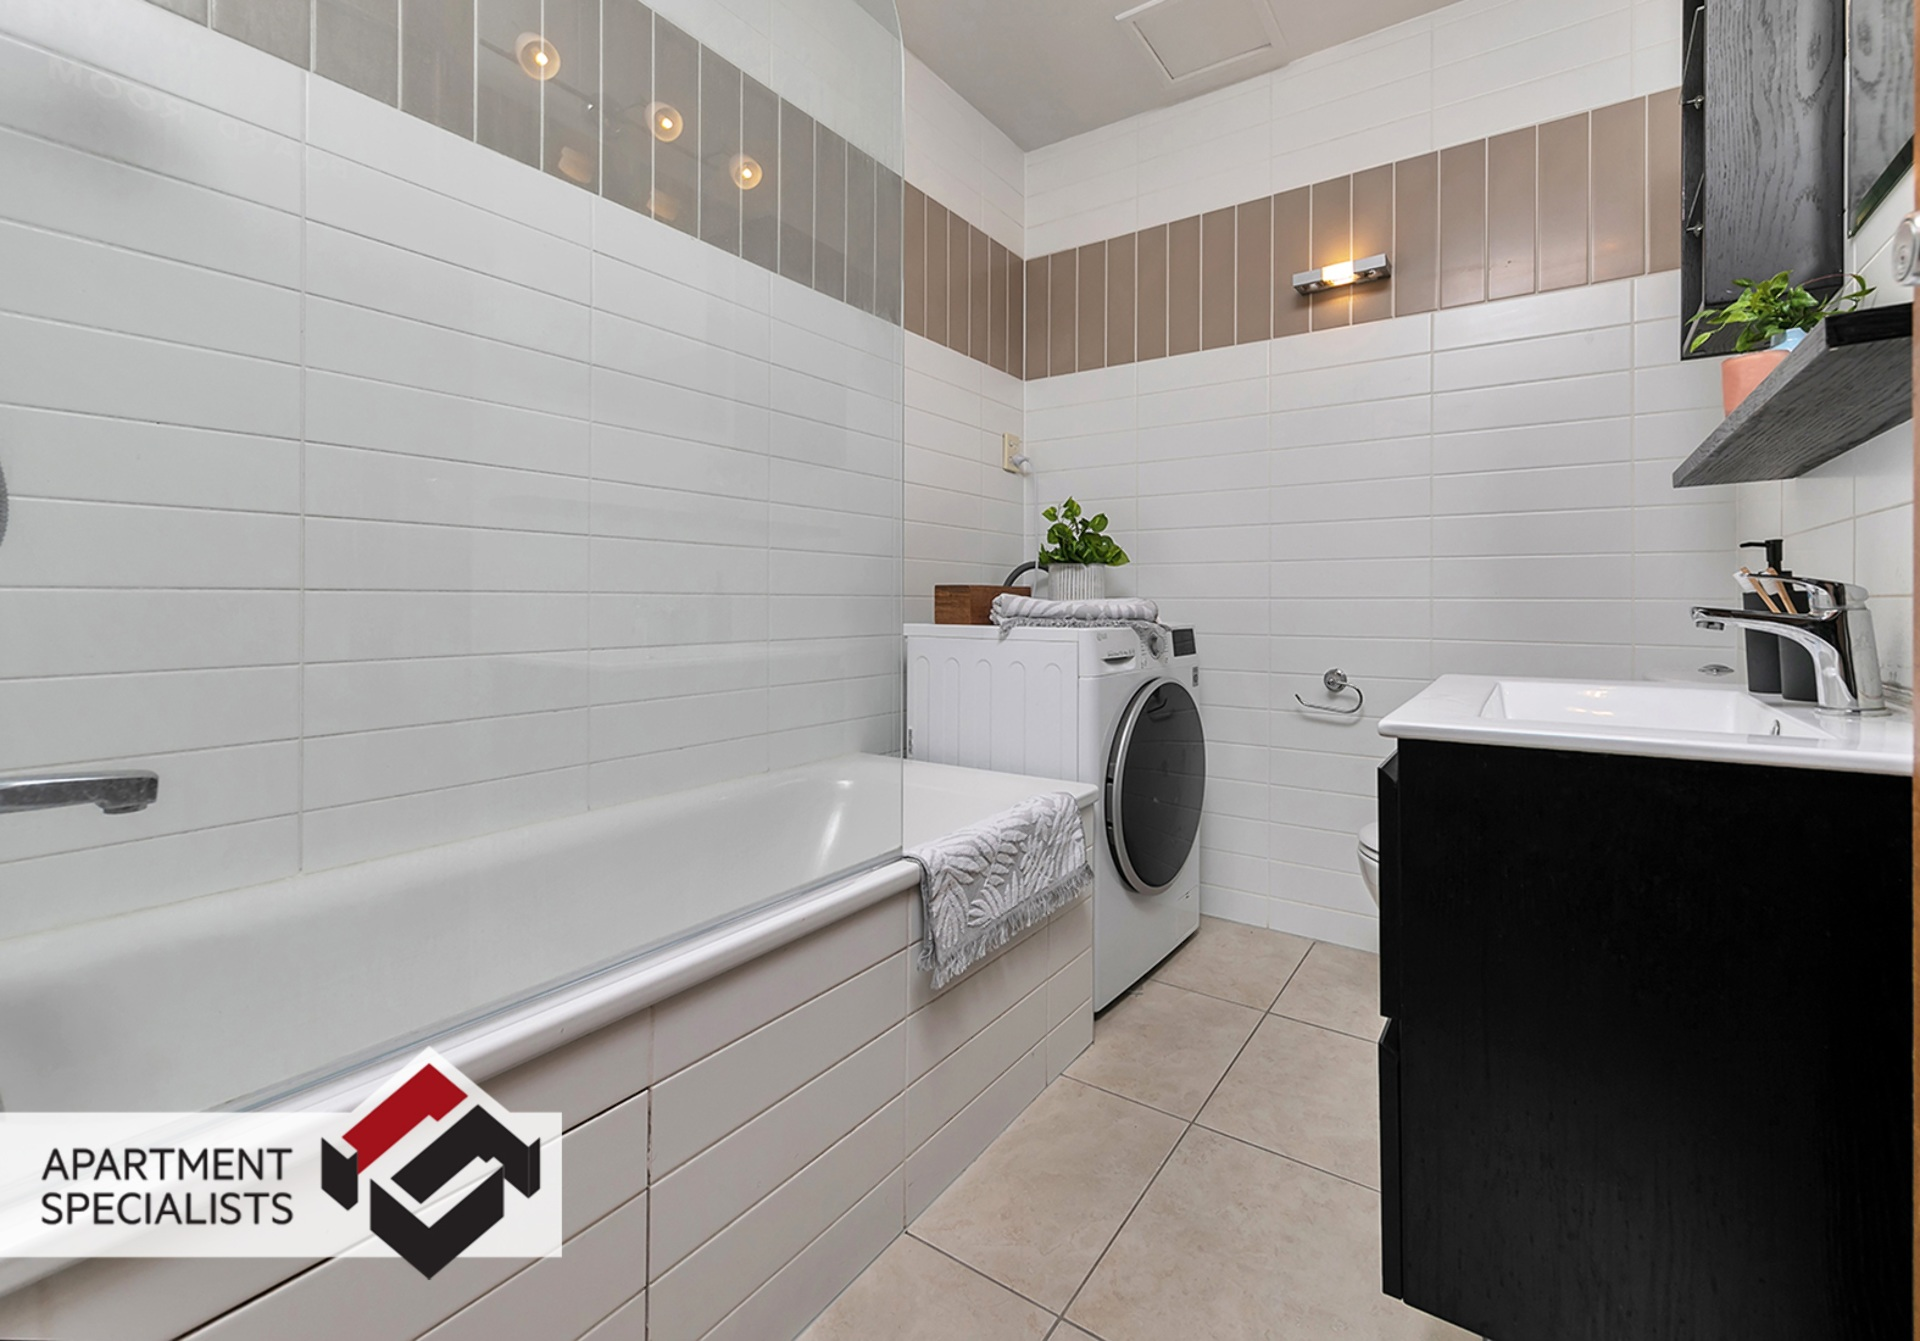 10 | 30 Heather Street, Parnell | Apartment Specialists